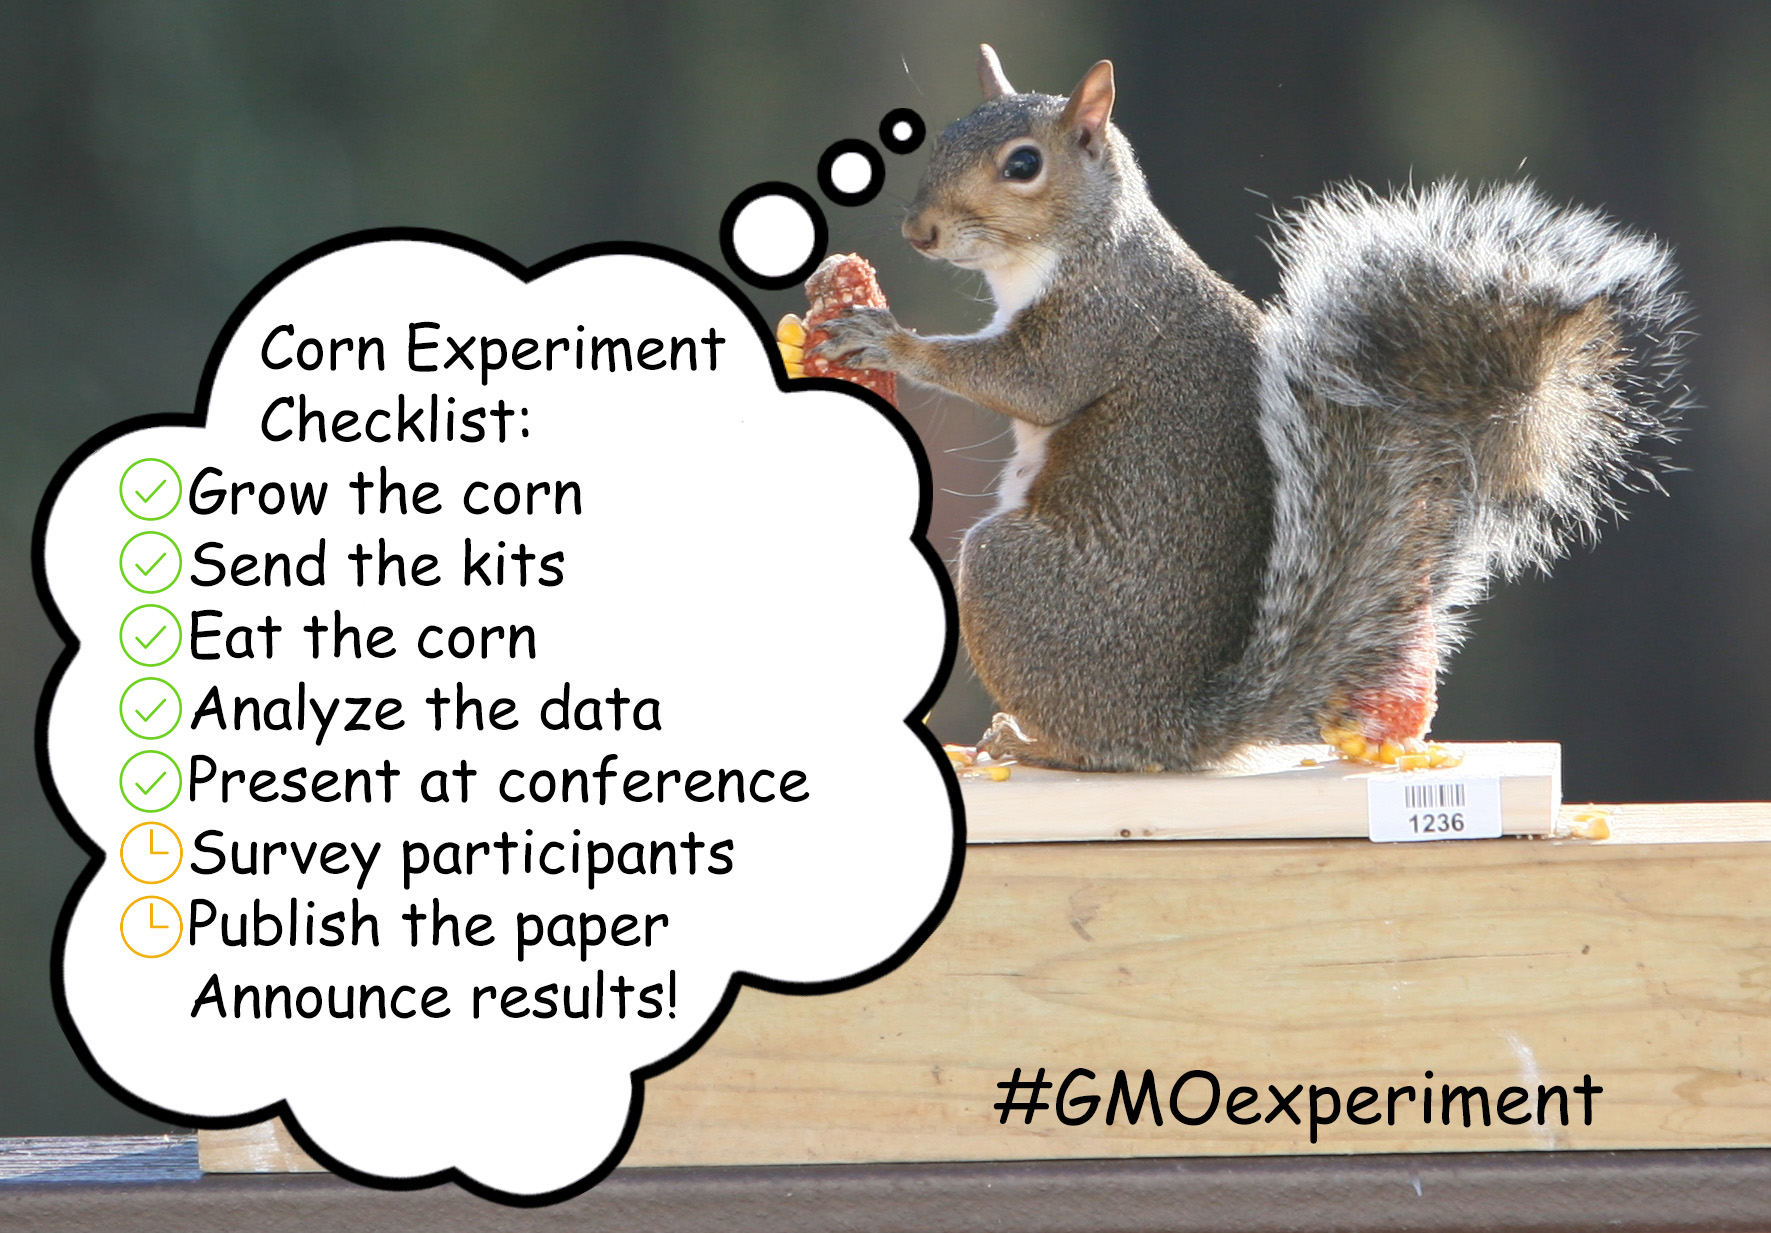 Final steps on the GMO Corn Experiment